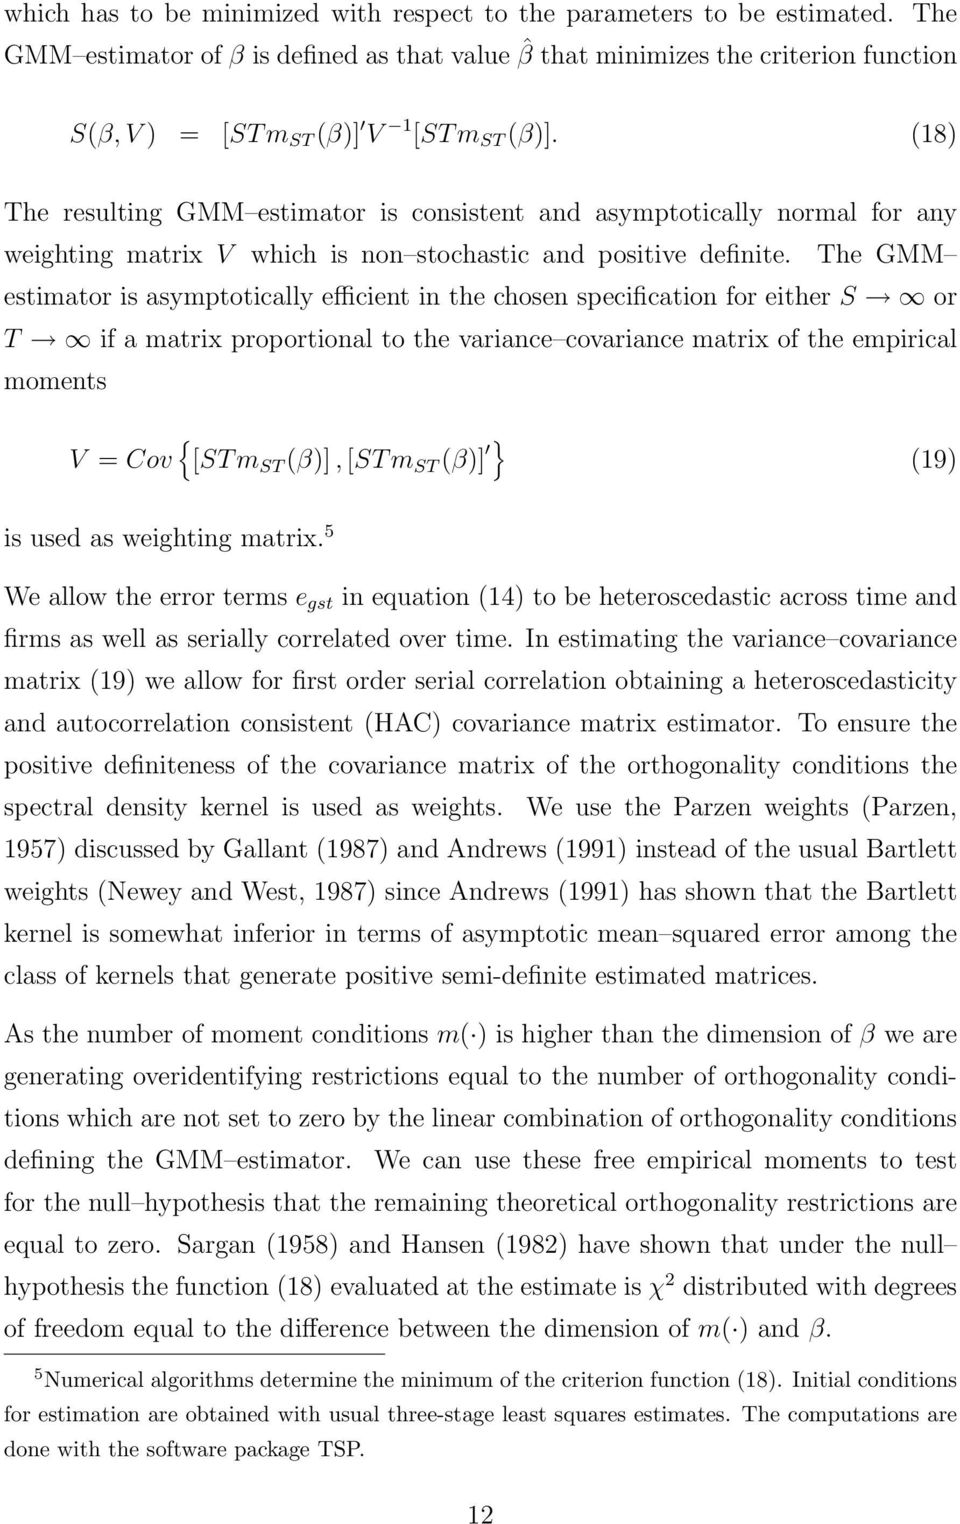 (18) The resulting GMM estimator is consistent and asymptotically normal for any weighting matrix V which is non stochastic and positive definite.